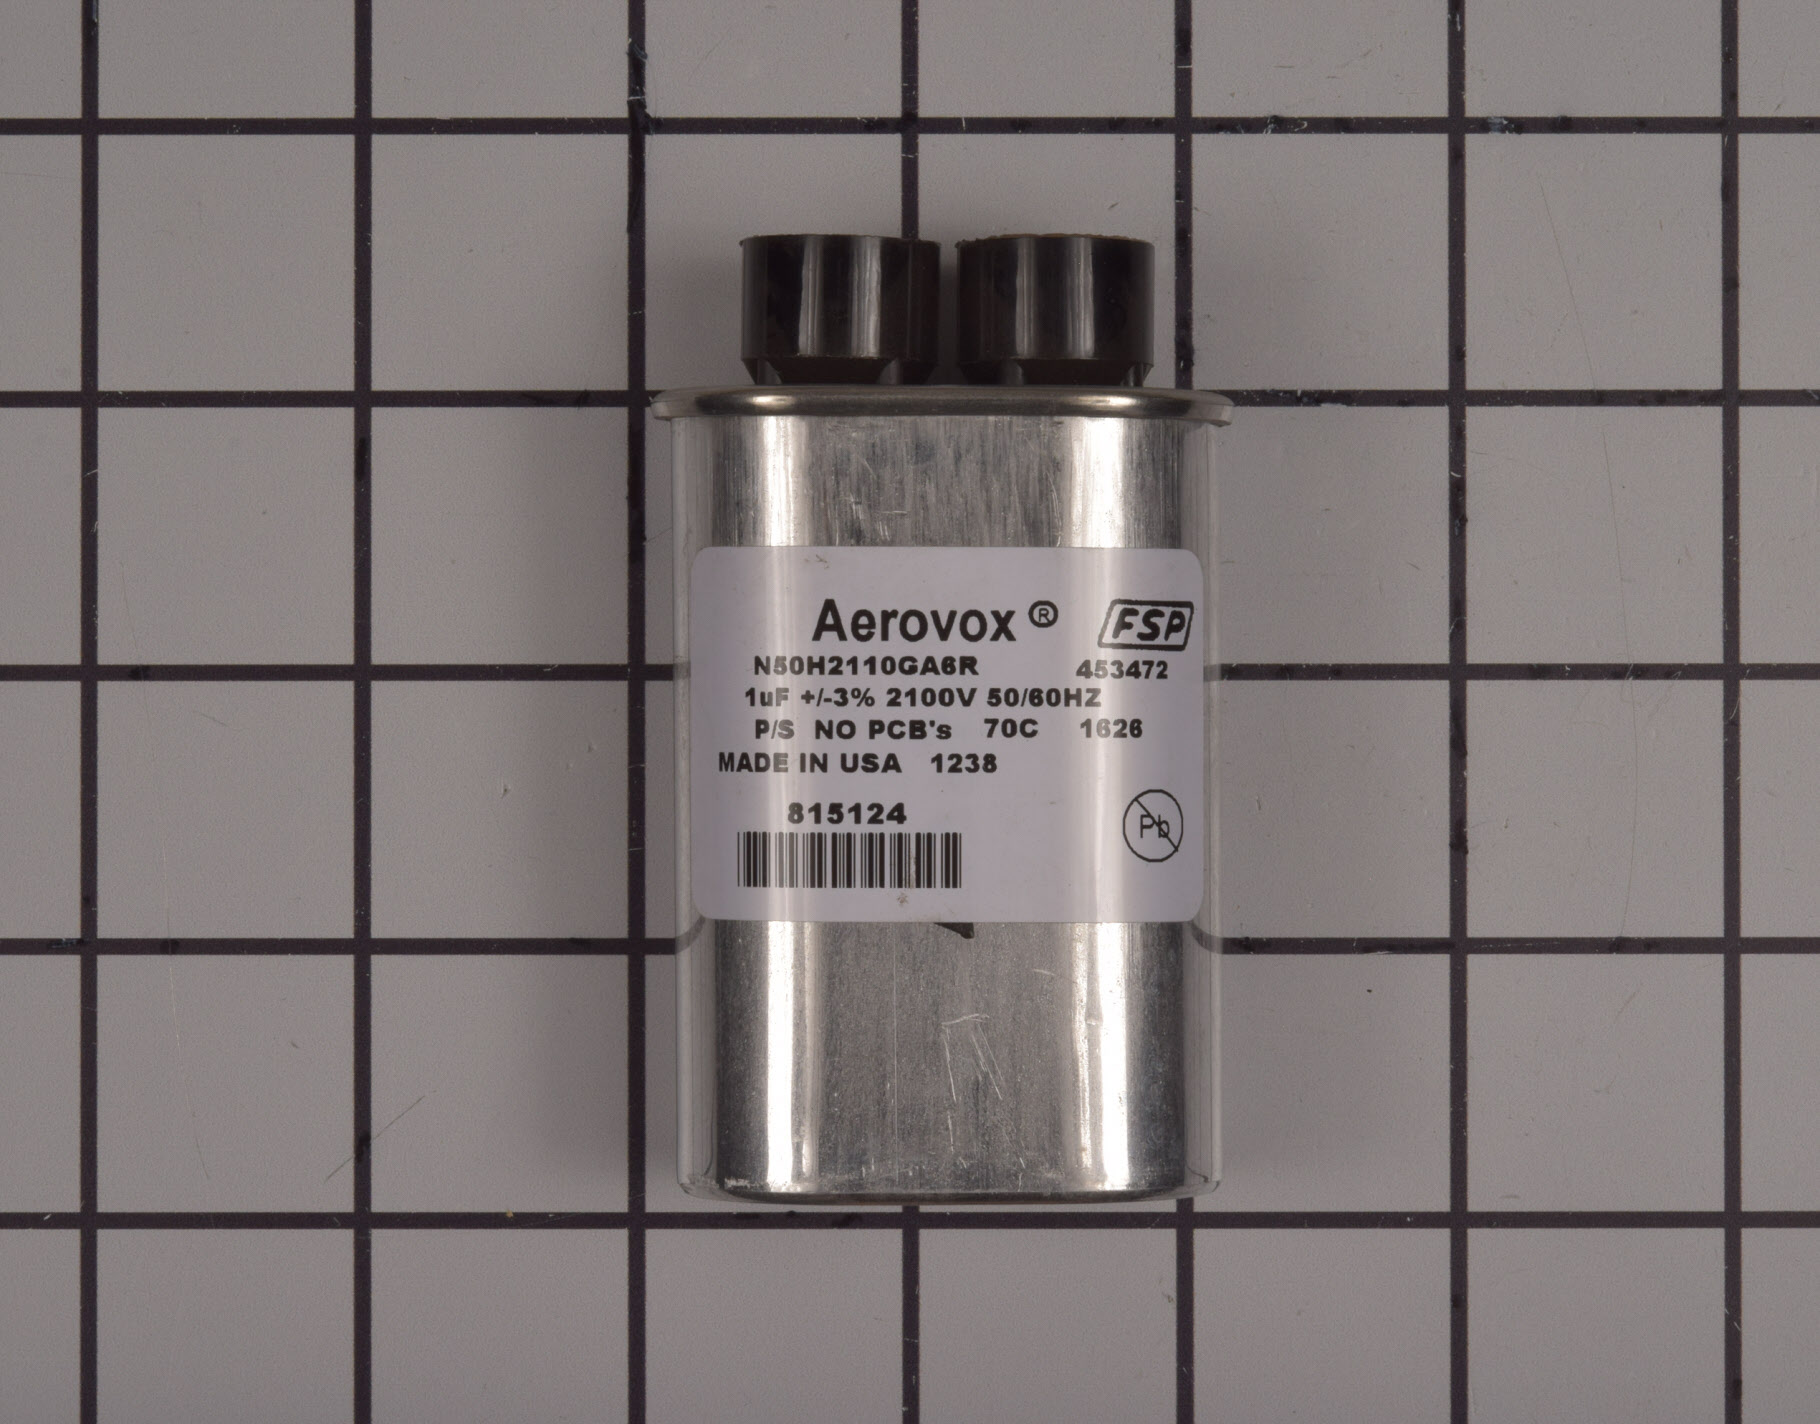 Amana Microwave Part # 815124 - High Voltage Capacitor